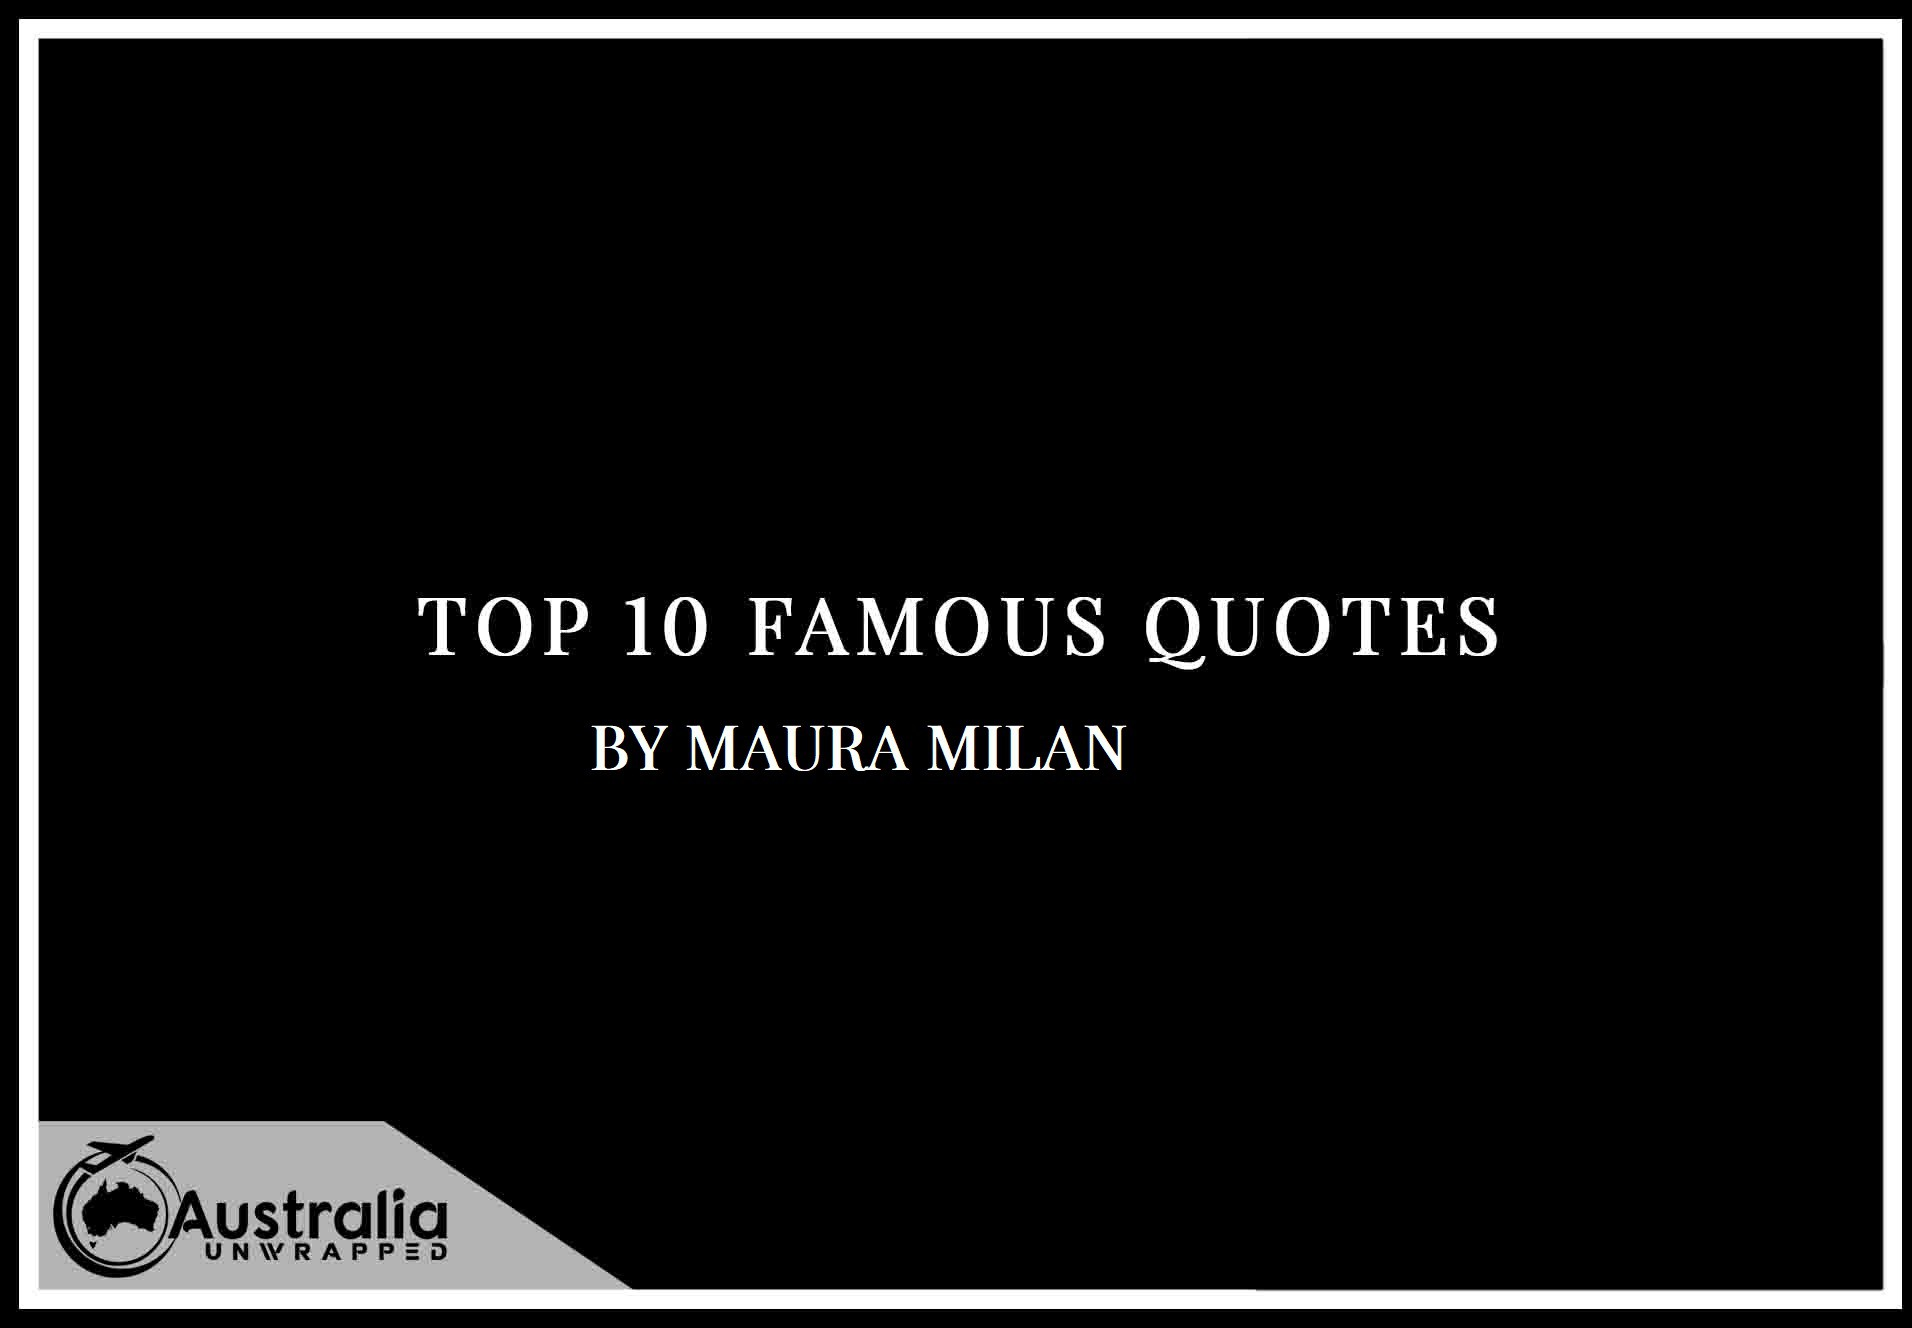 Top 10 Famous Quotes by Author Maura Milan